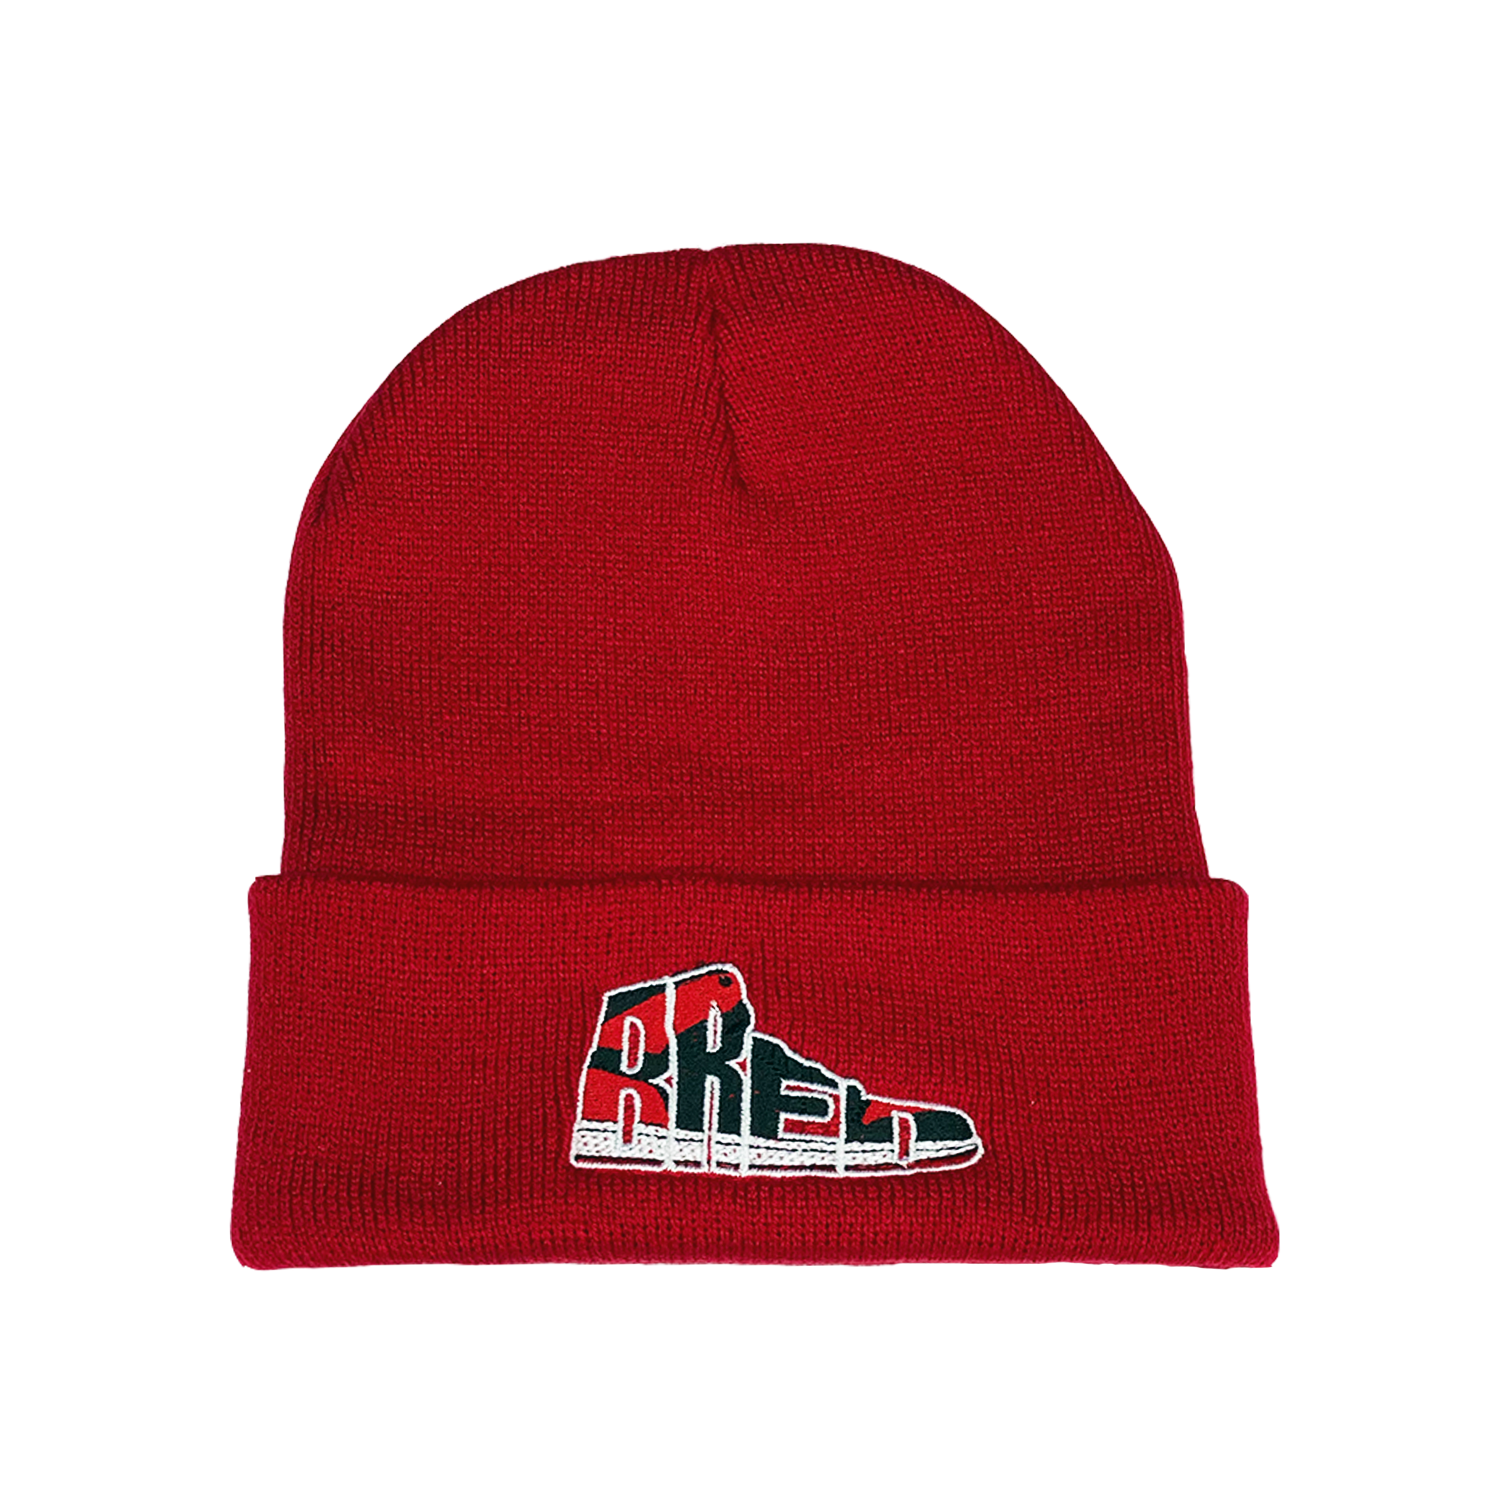 Bred Essentials Beanie - Red